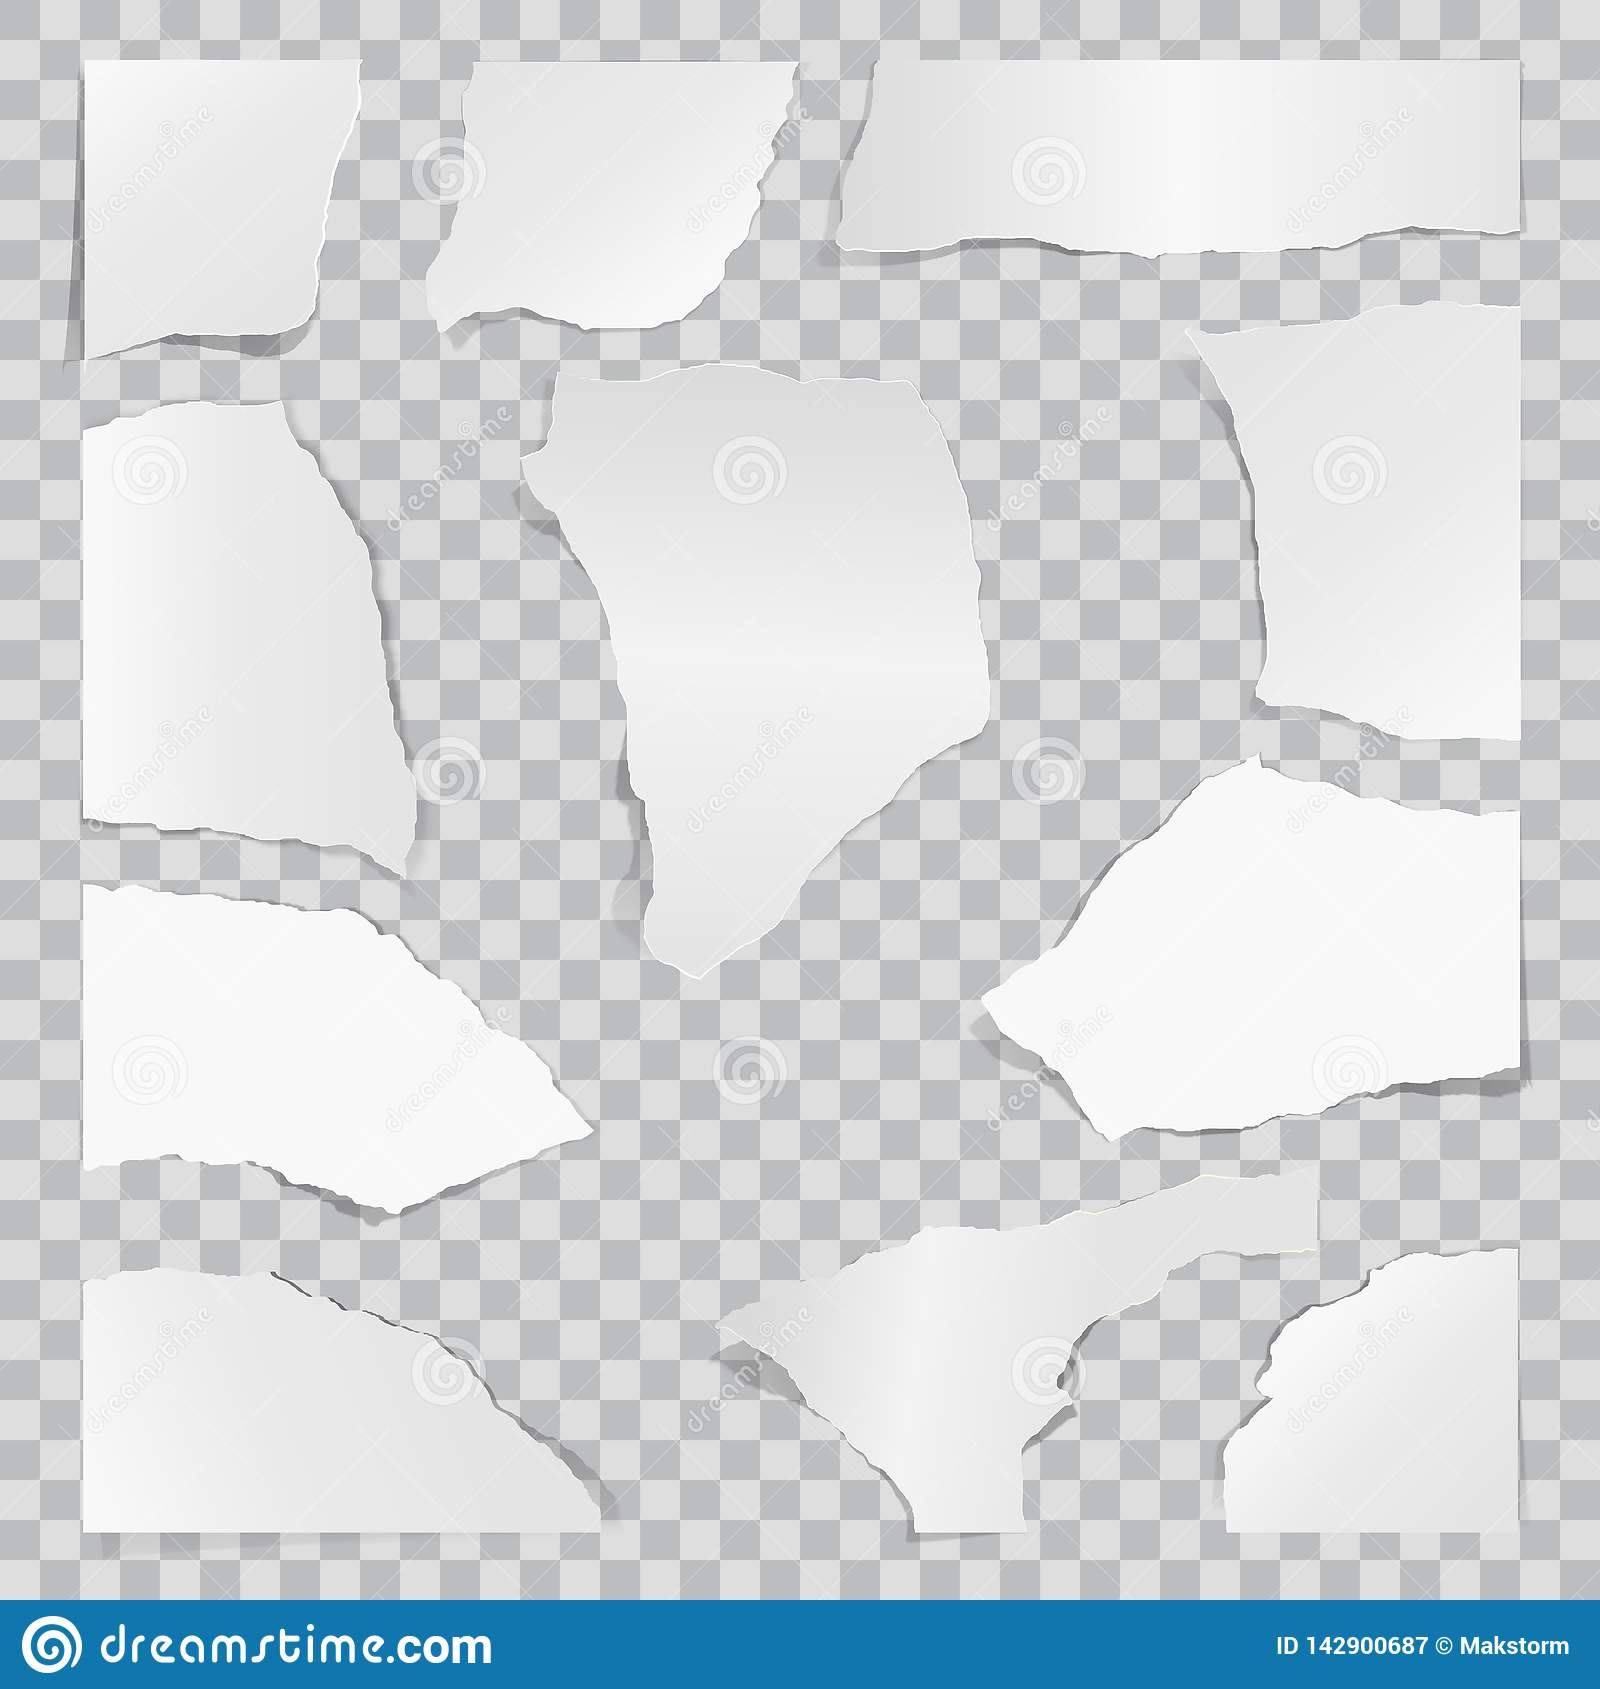 Paper torn to pieces. Scrap paper. Web banner background